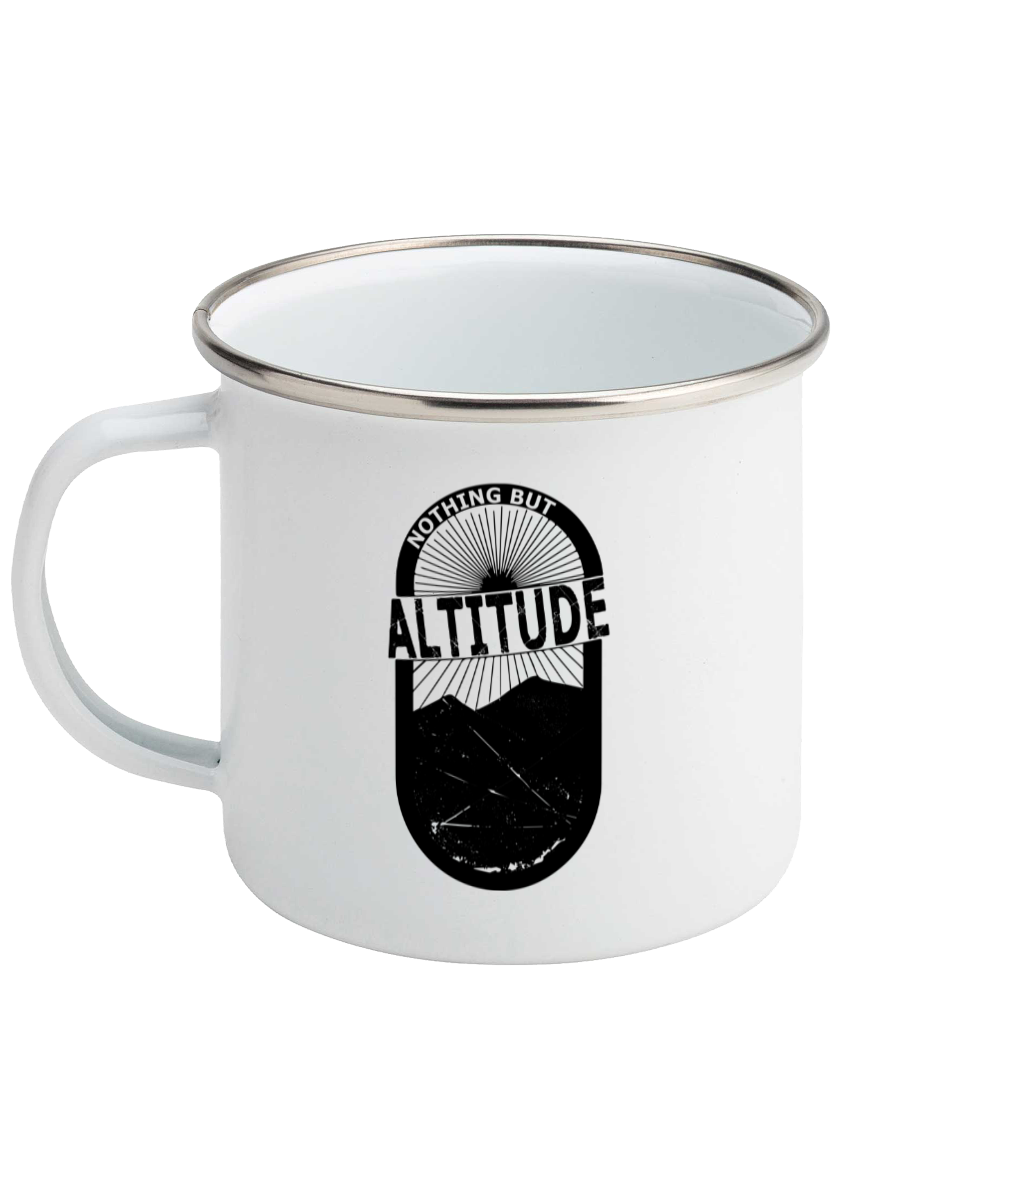 Nothing But Altitude - Enamel Mug, Suggested Products, Pen and Ink Studios Adventure Clothing